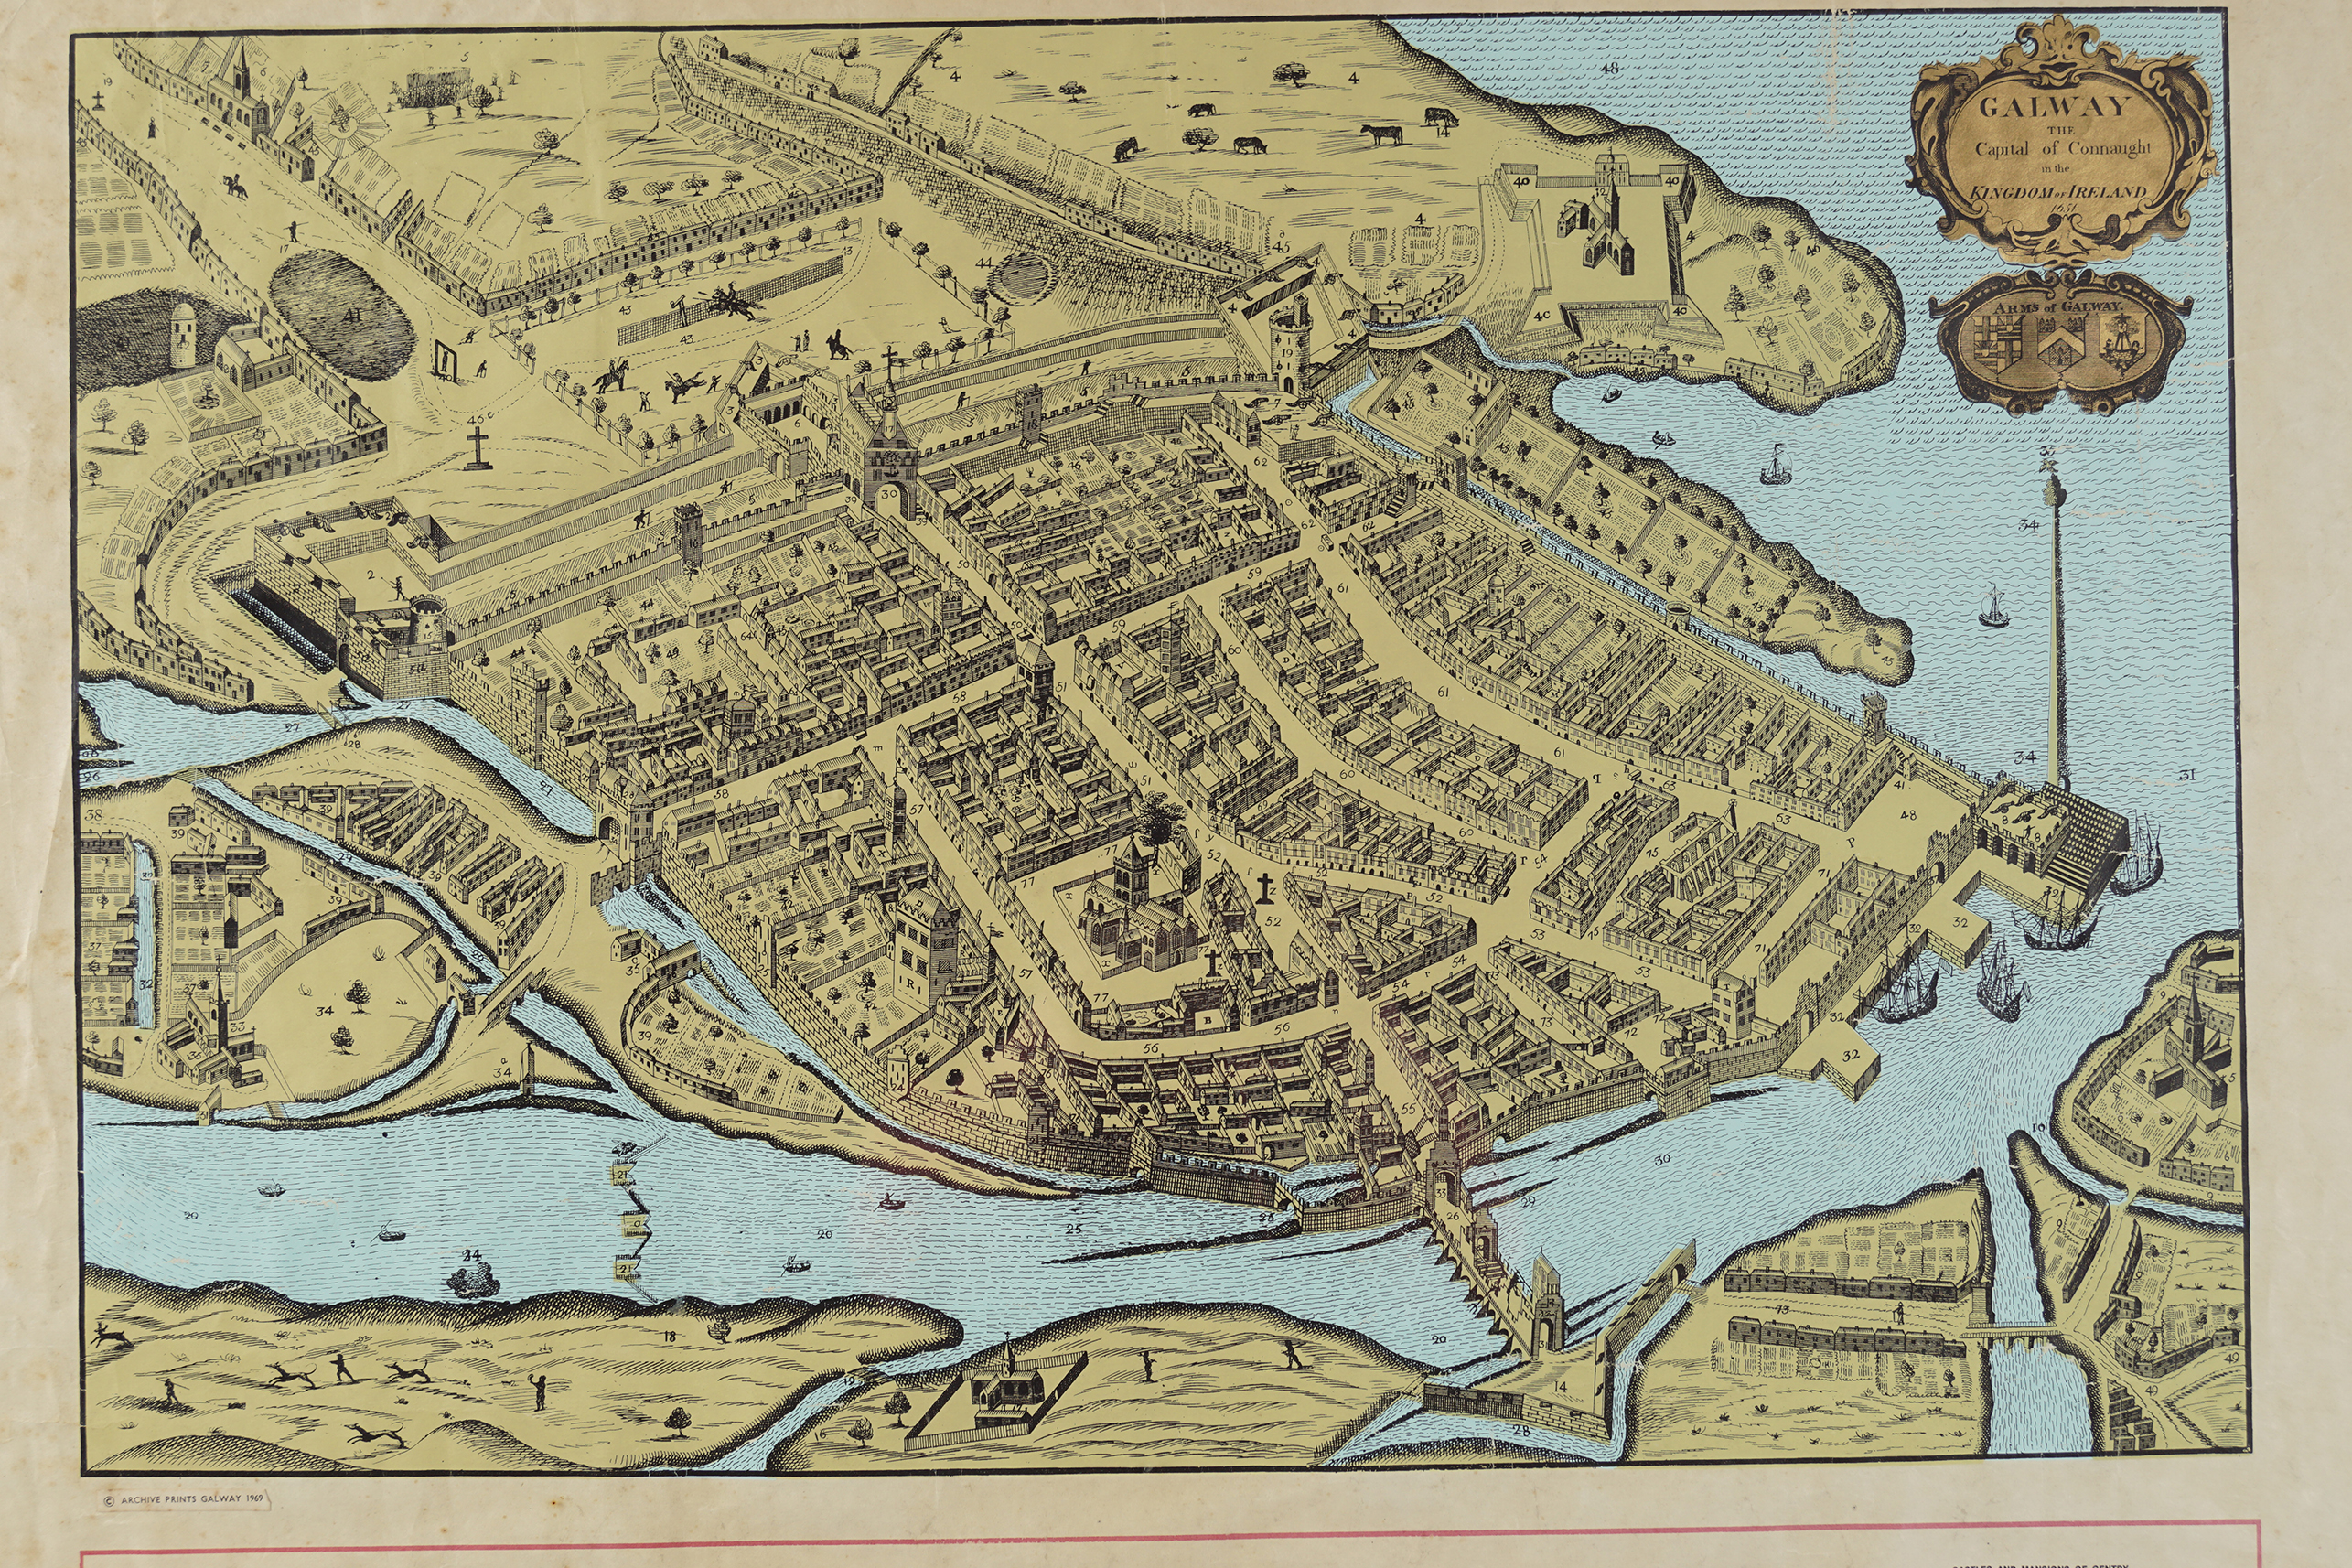 MAP OF GALWAY FROM 1651 - Image 2 of 4